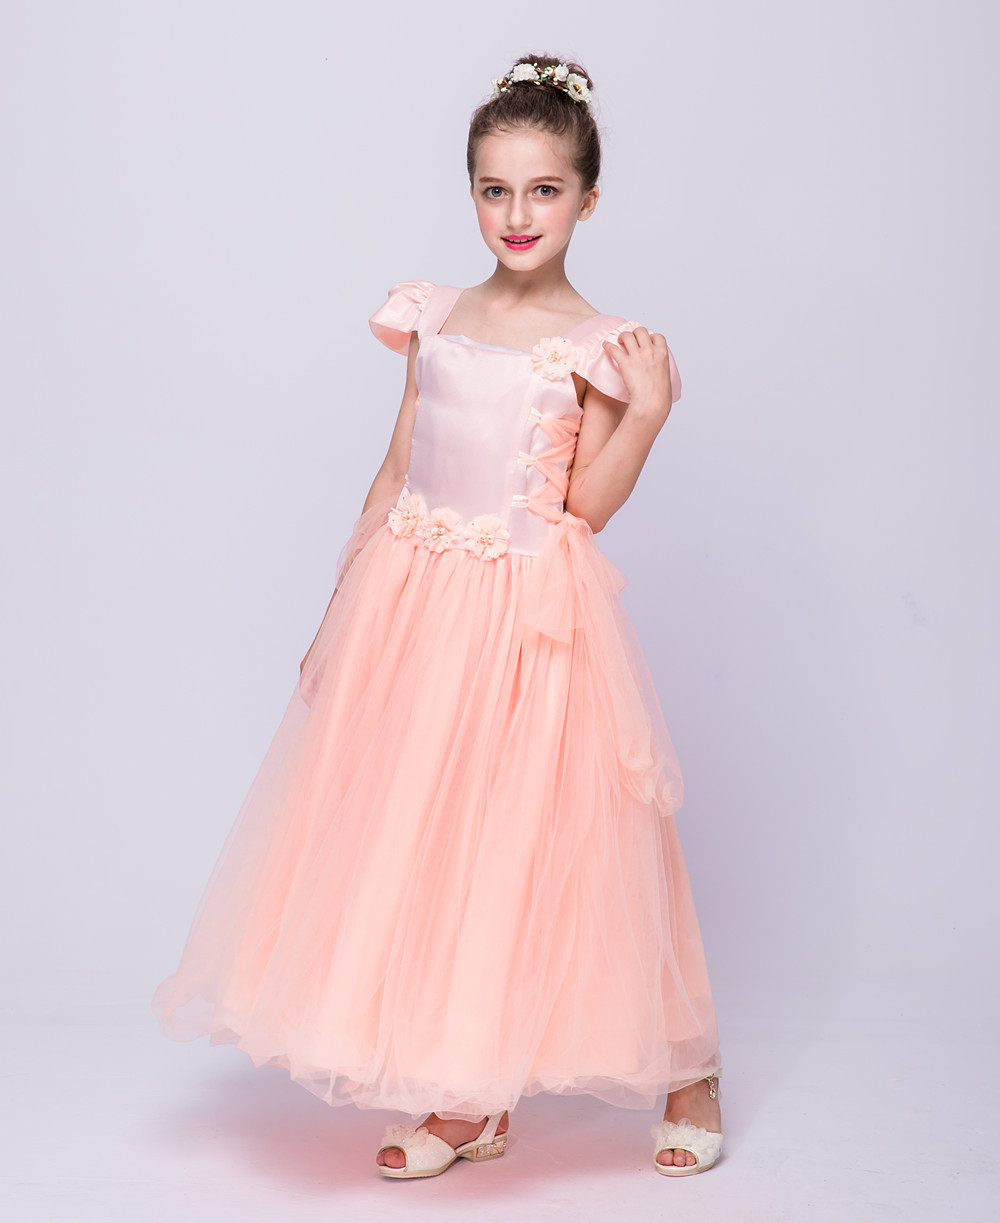 aae4a3668f Fashion flowers girls dresses for wedding party 4 6 8 10 12 year old ...